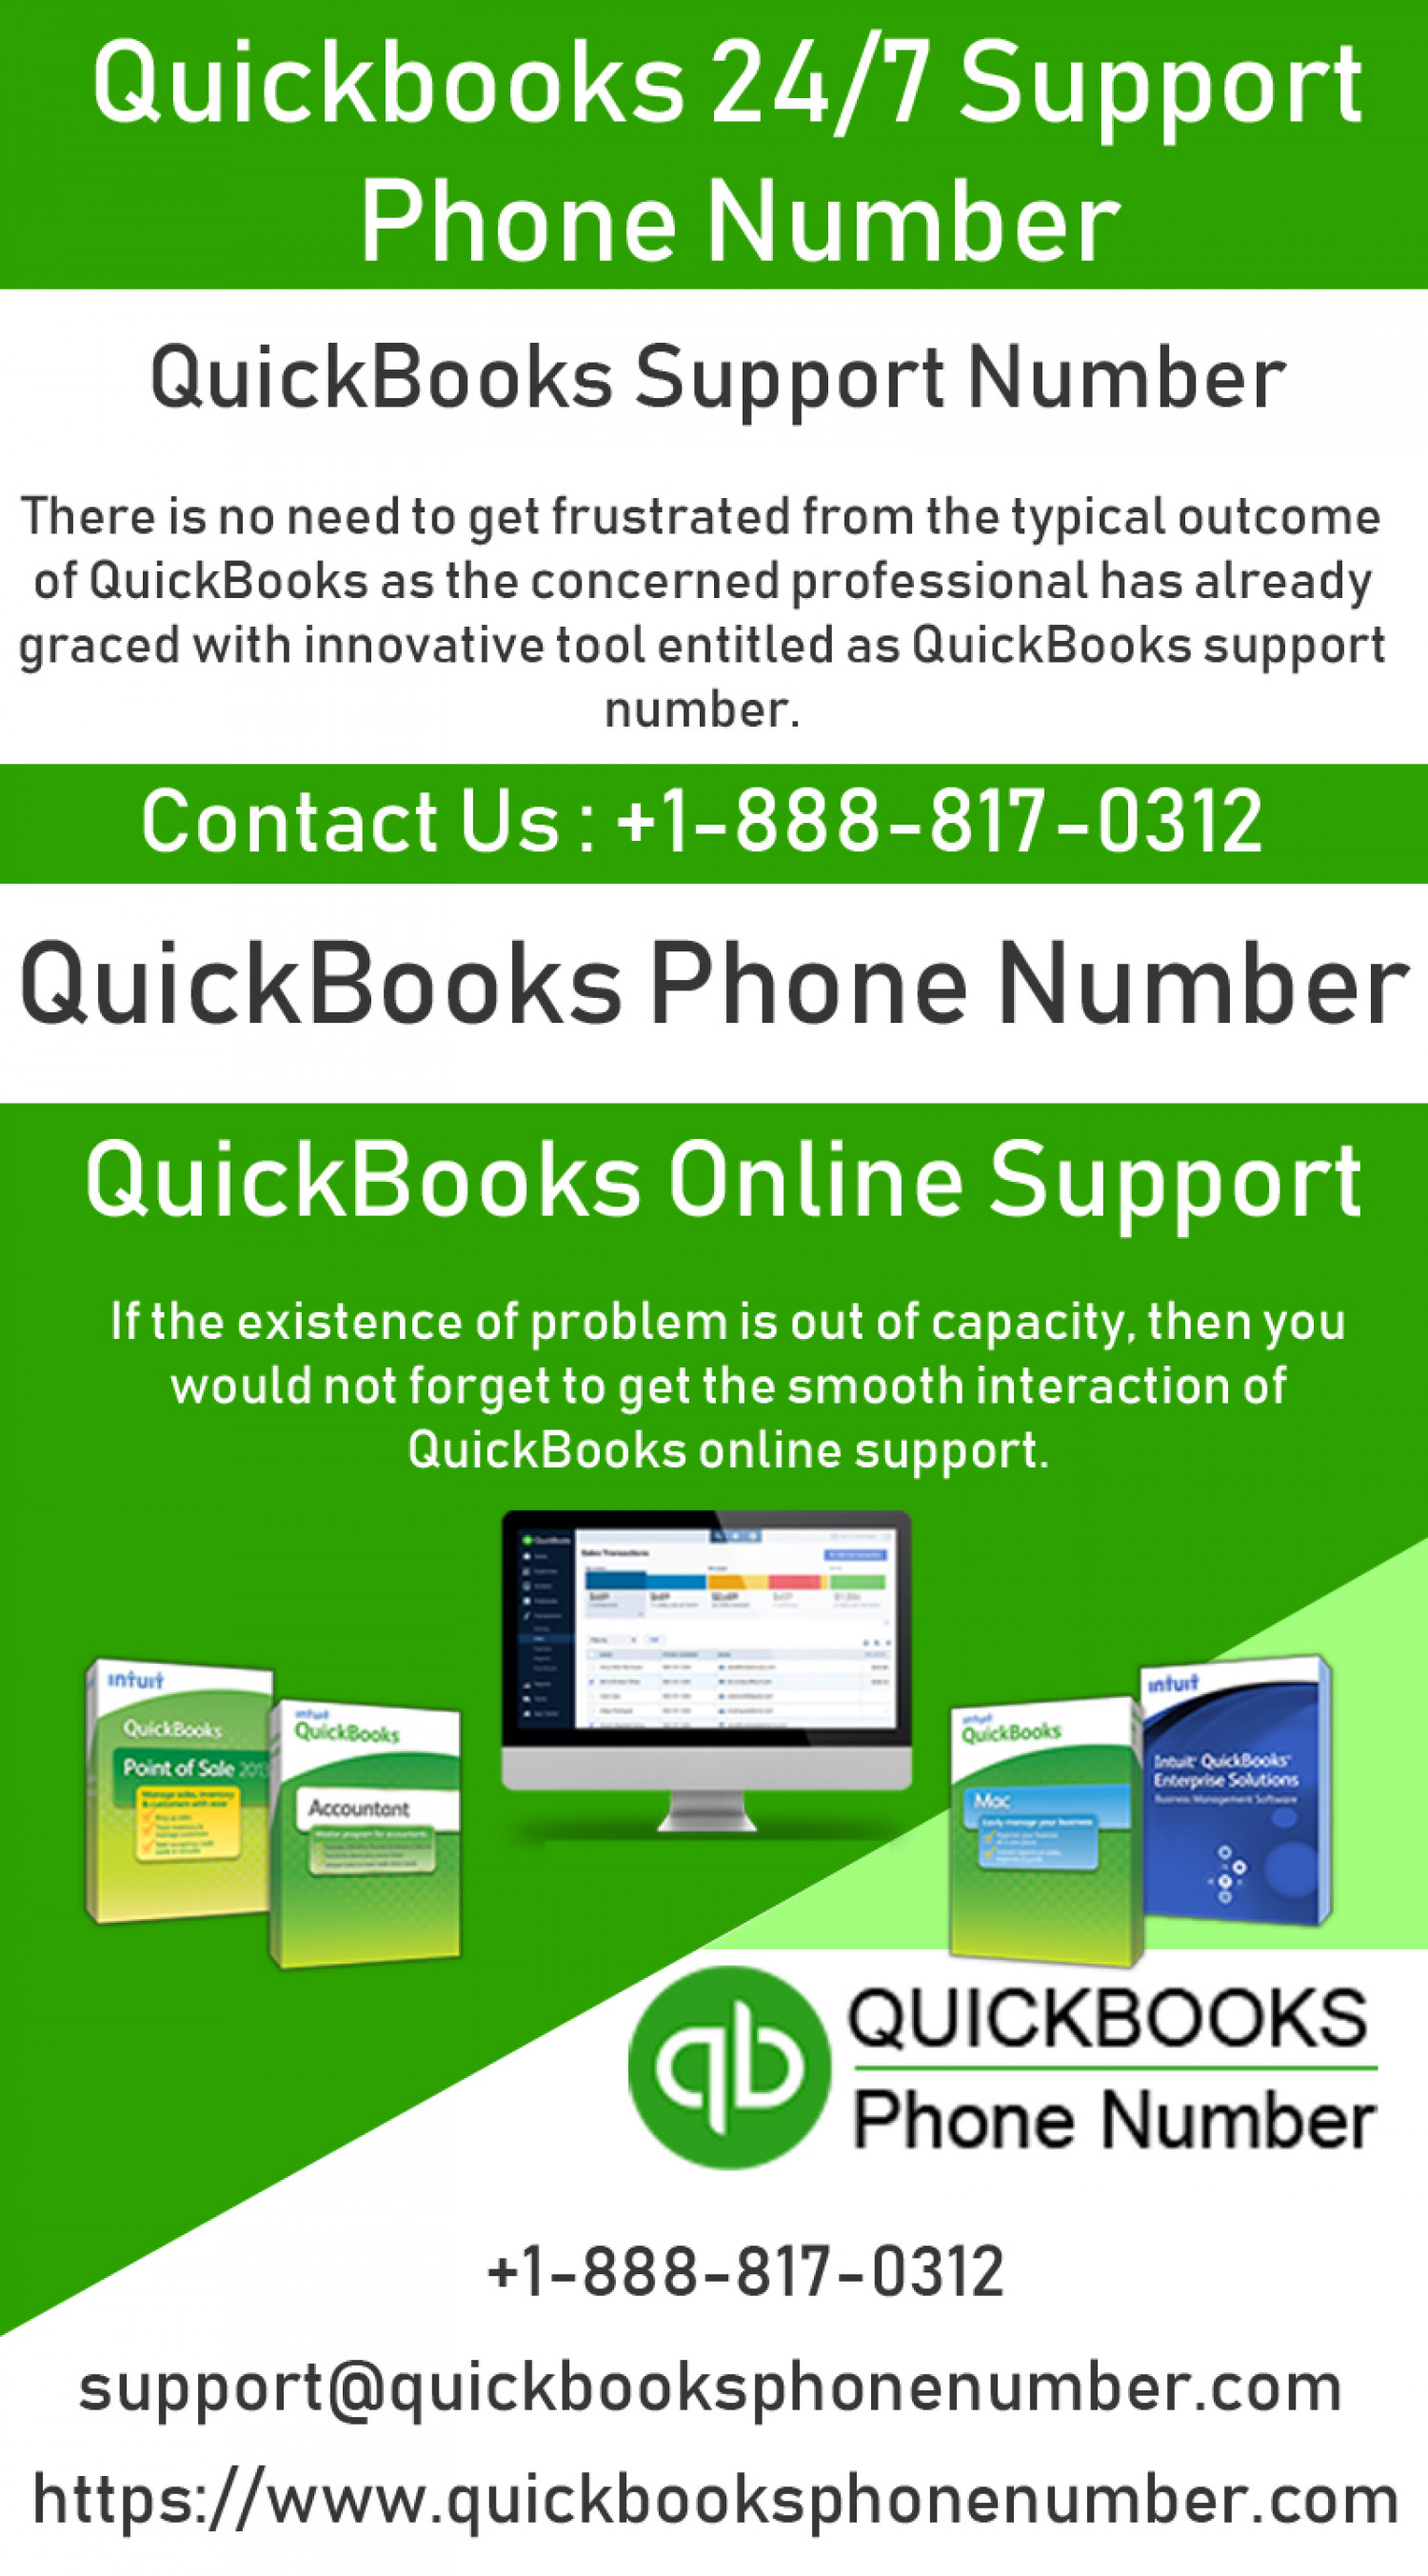 Quickbooks 24x7 support phone number Infographic